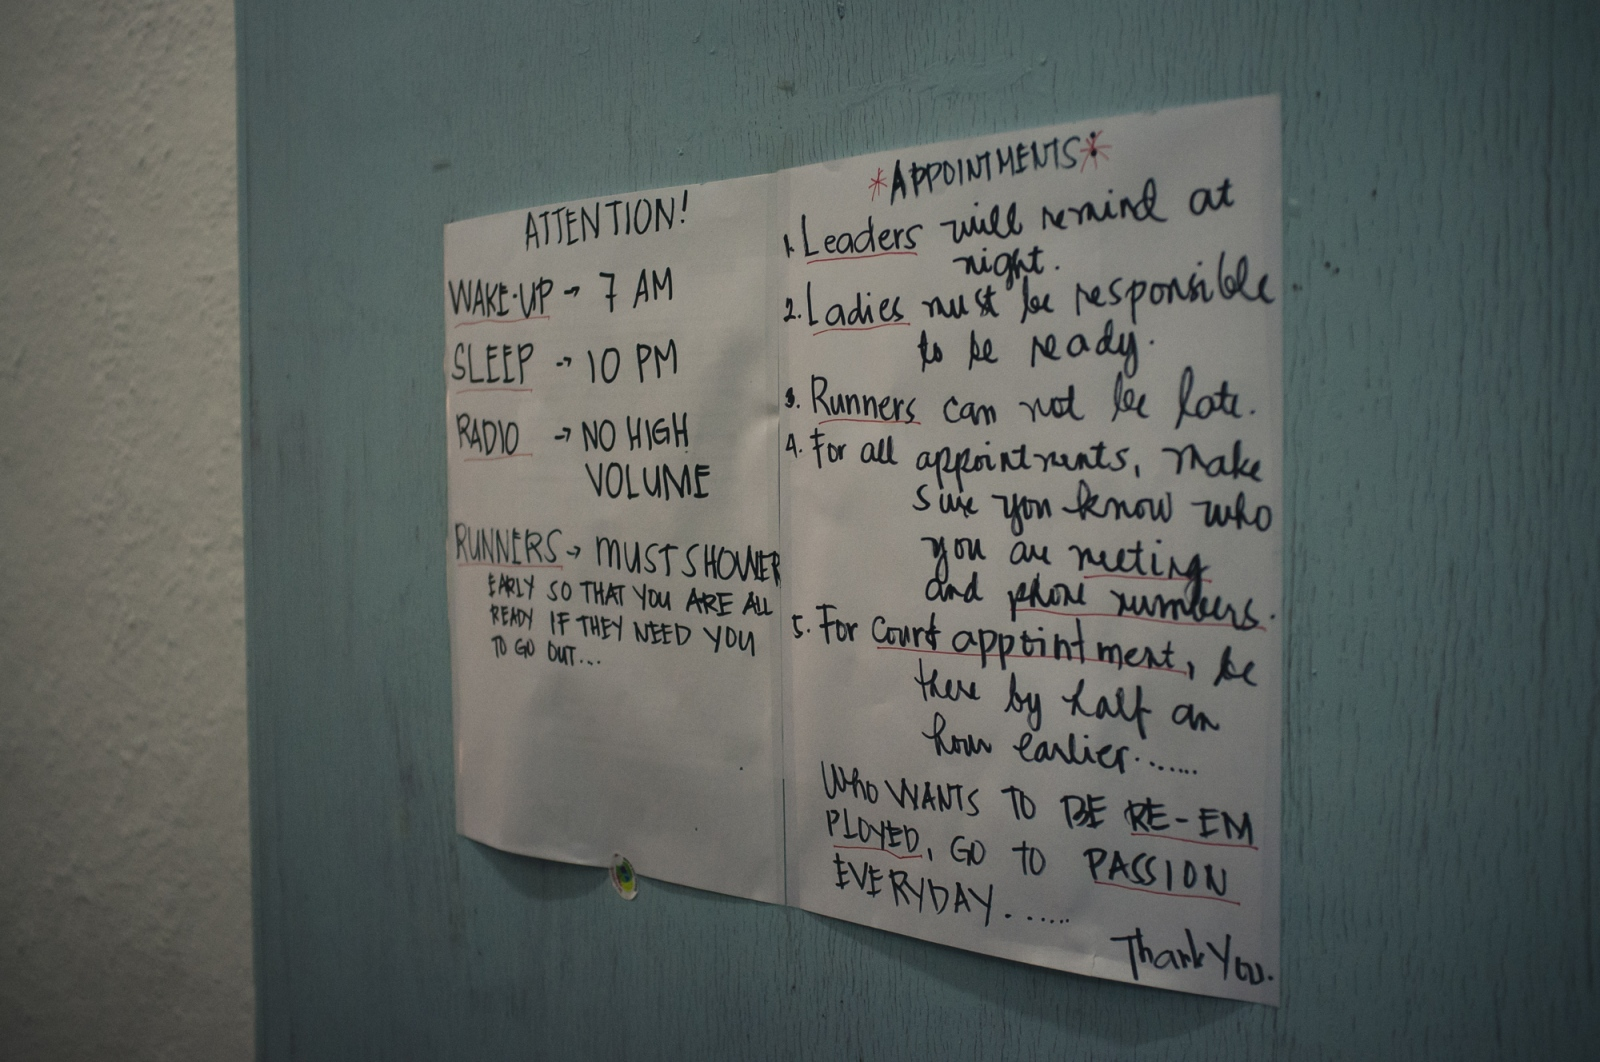 House rules at a shelter run by The Humanitarian Organisation for Migration Economics (HOME), an organisation that provides direct assistance to men and women migrants and victims of human trafficking and forced labour. Abuse of domestic workers ranges from physical and verbal abuse, sexual assault, punative action for perceived wrongs, violation of contracted rights and witheld pay.